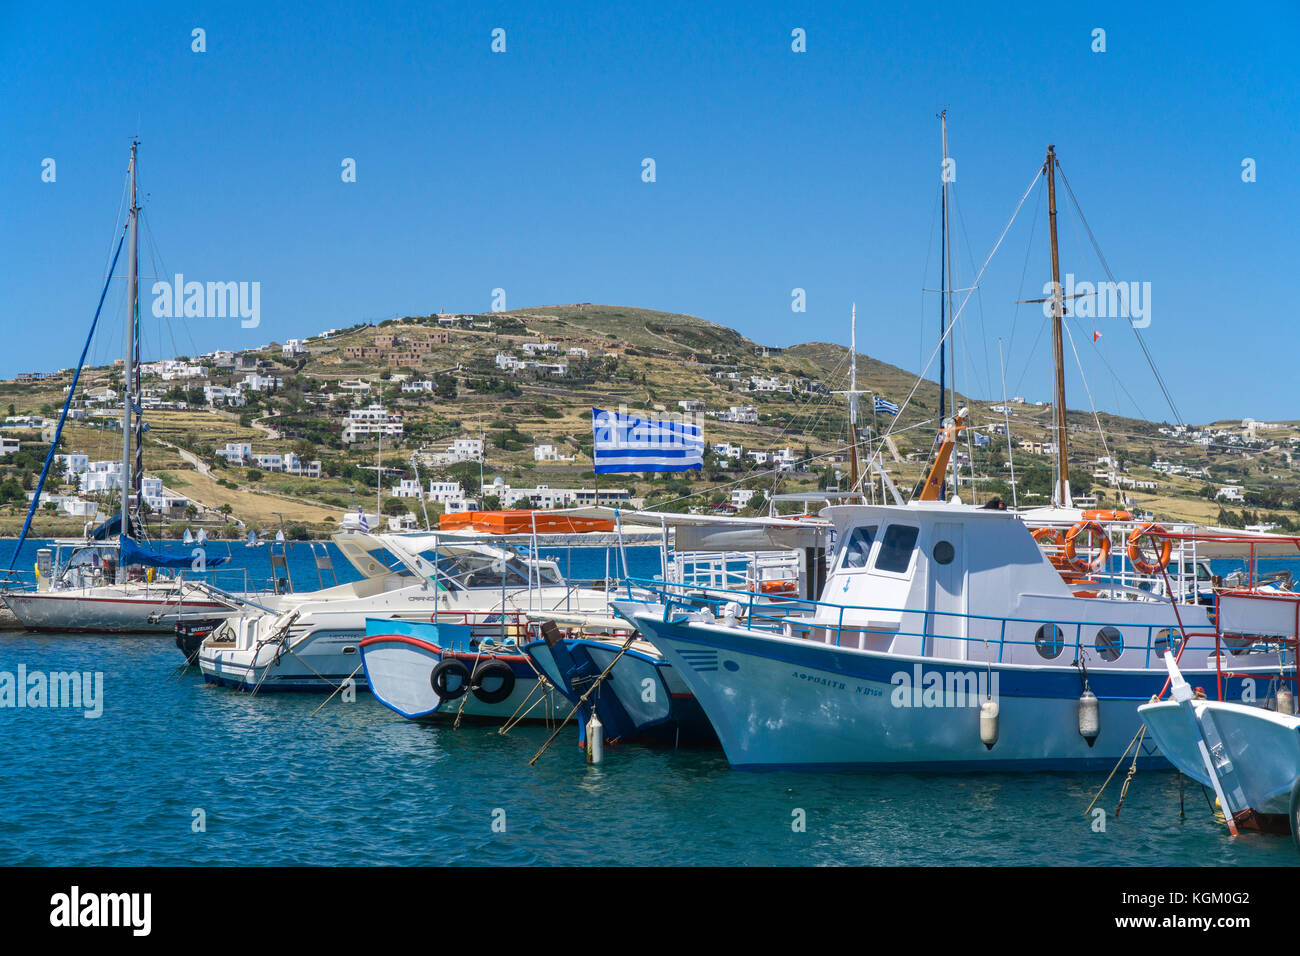 Fishing boats at the harbour of Parikia, Paros island, Cyclades, Aegean, Greece - Stock Image